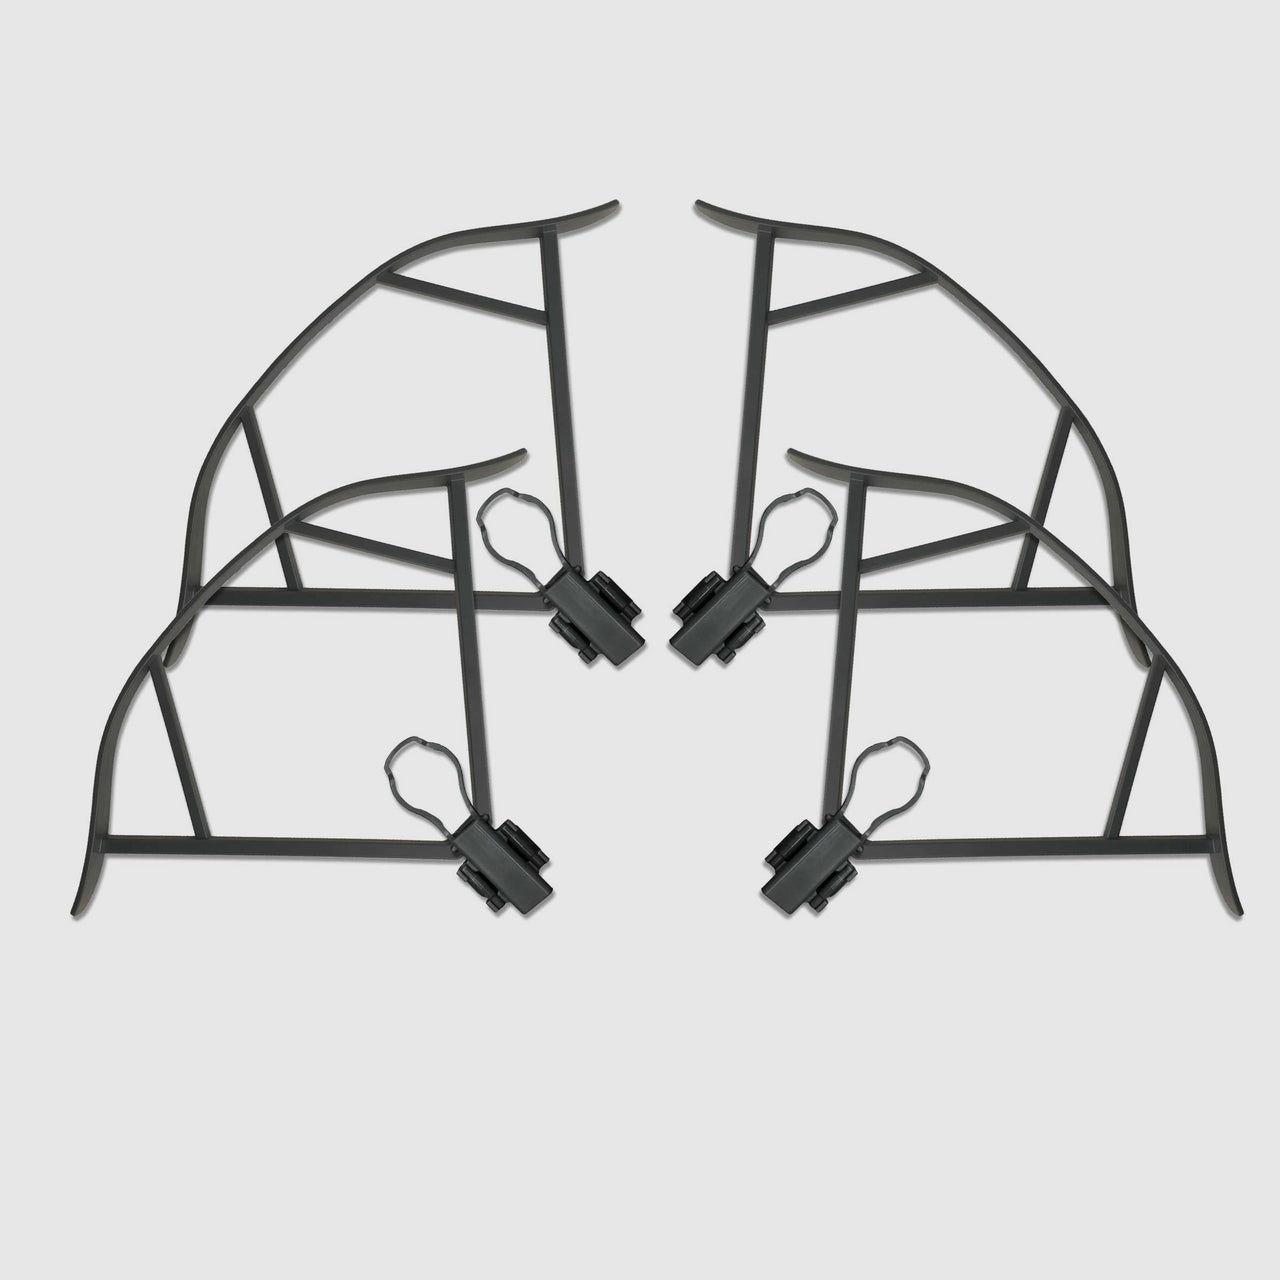 Propeller Guards for DJI Mavic Pro